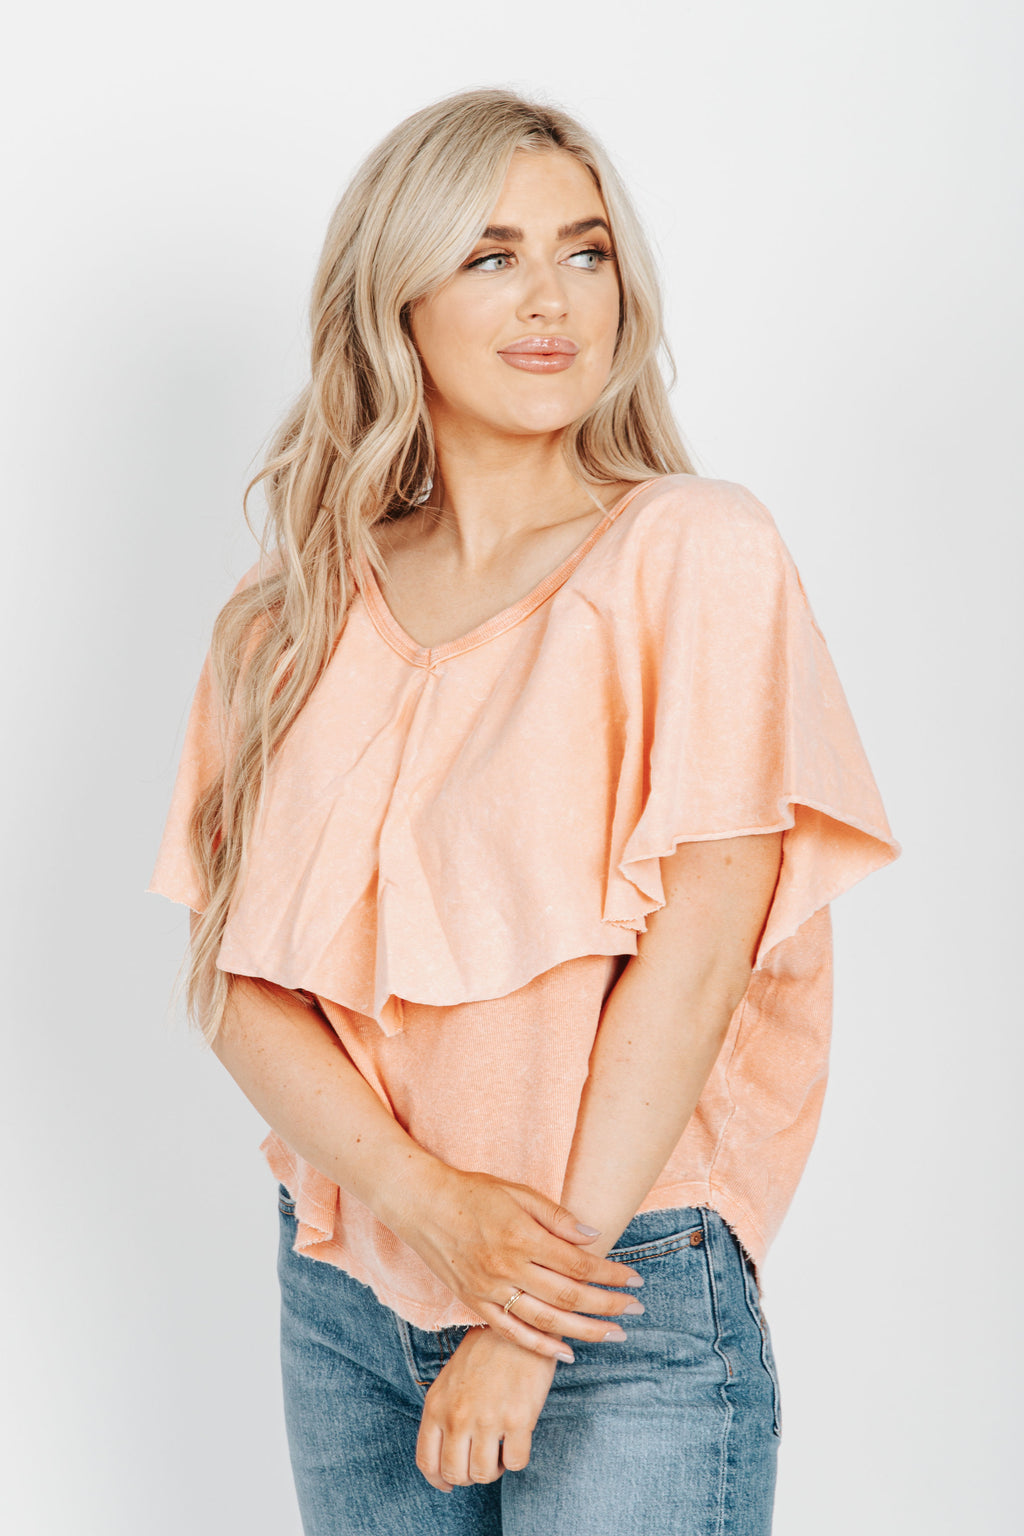 Free People: Girl Talk Tee in Sunny Peach, studio shoot; front view